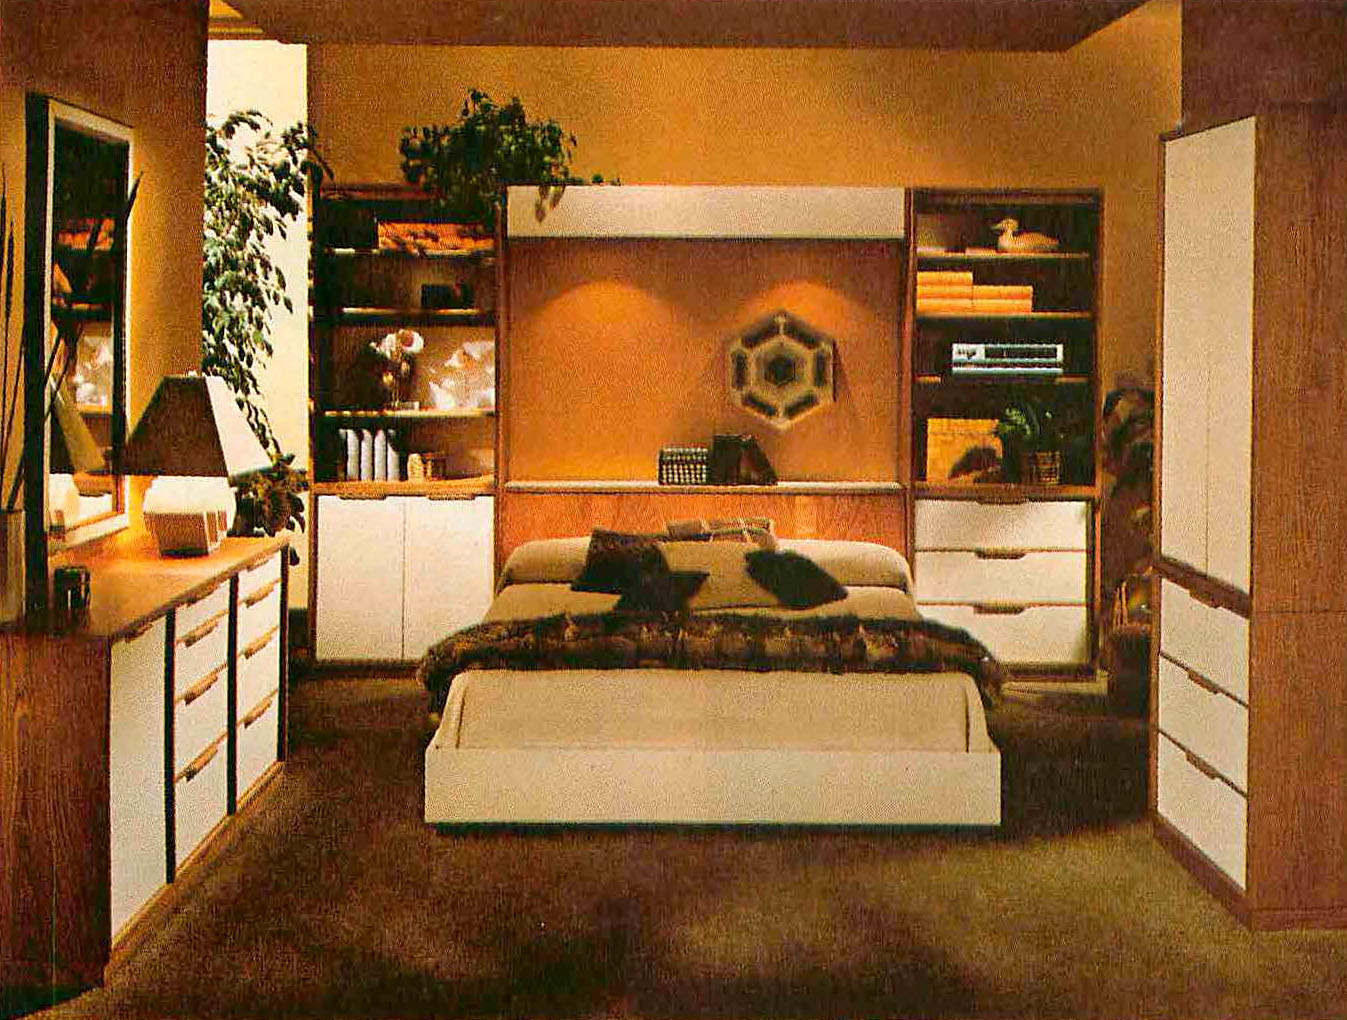 Pages from Homeowners How To Vol 03 No 5 Sep-Oct 1978 {PDF}-3_Page_5a